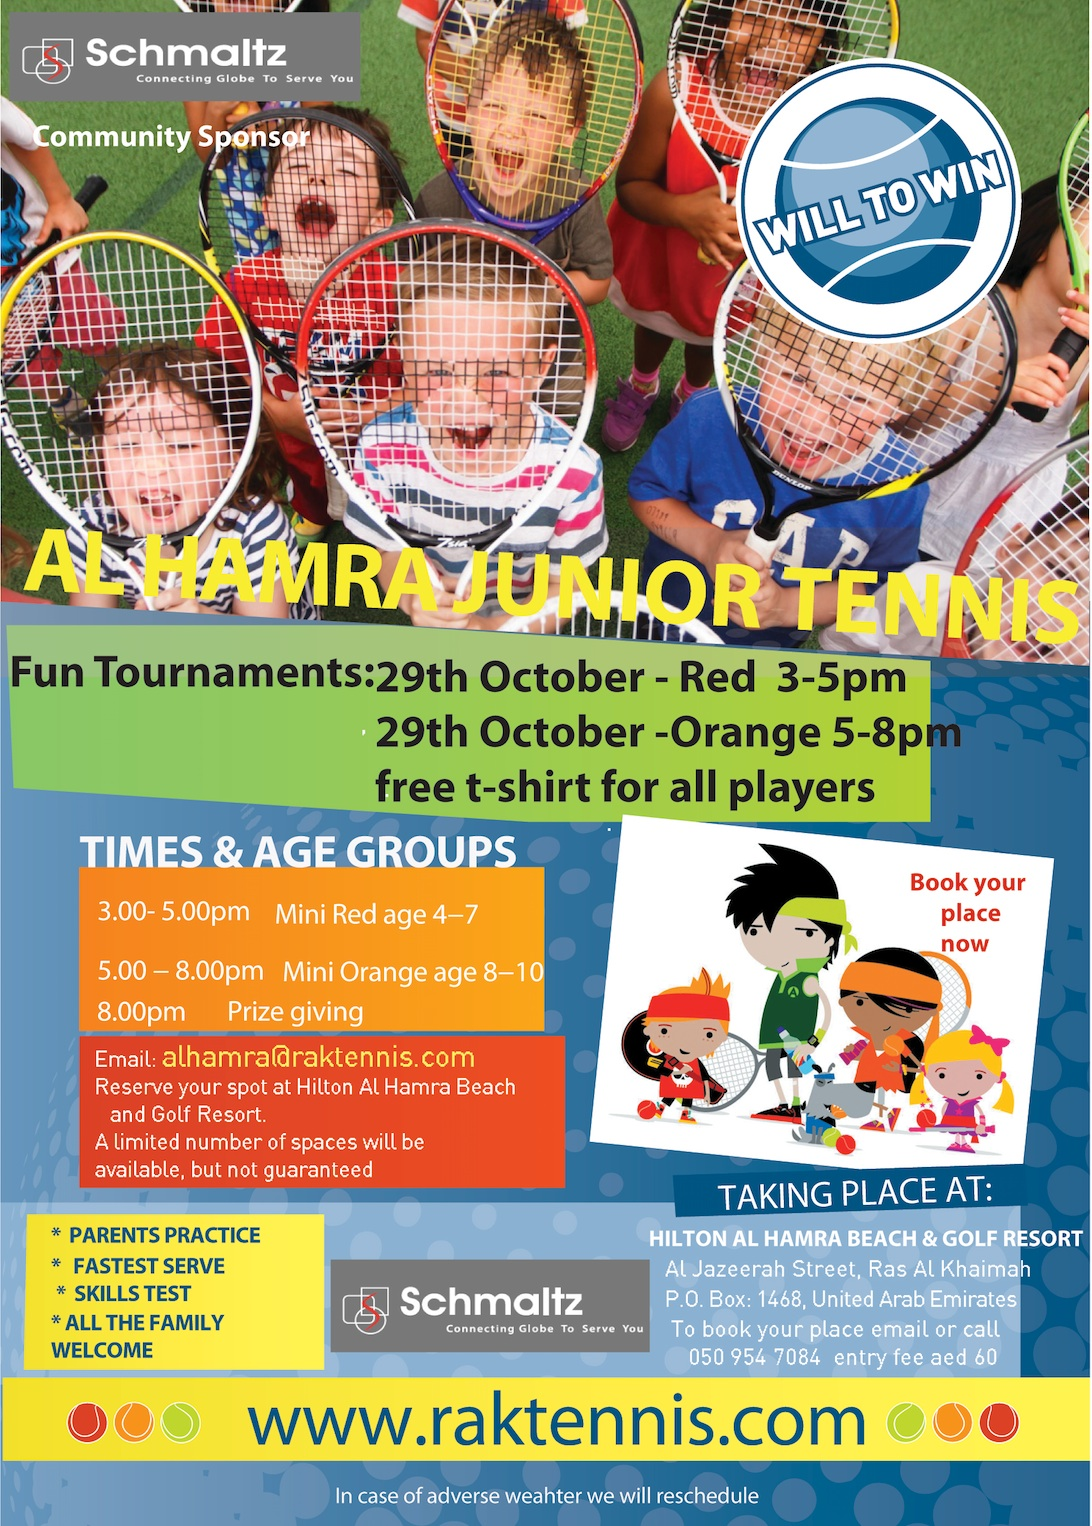 Al Hamra flyer 291016 JUNIOR TOURNAMENT v2 copy